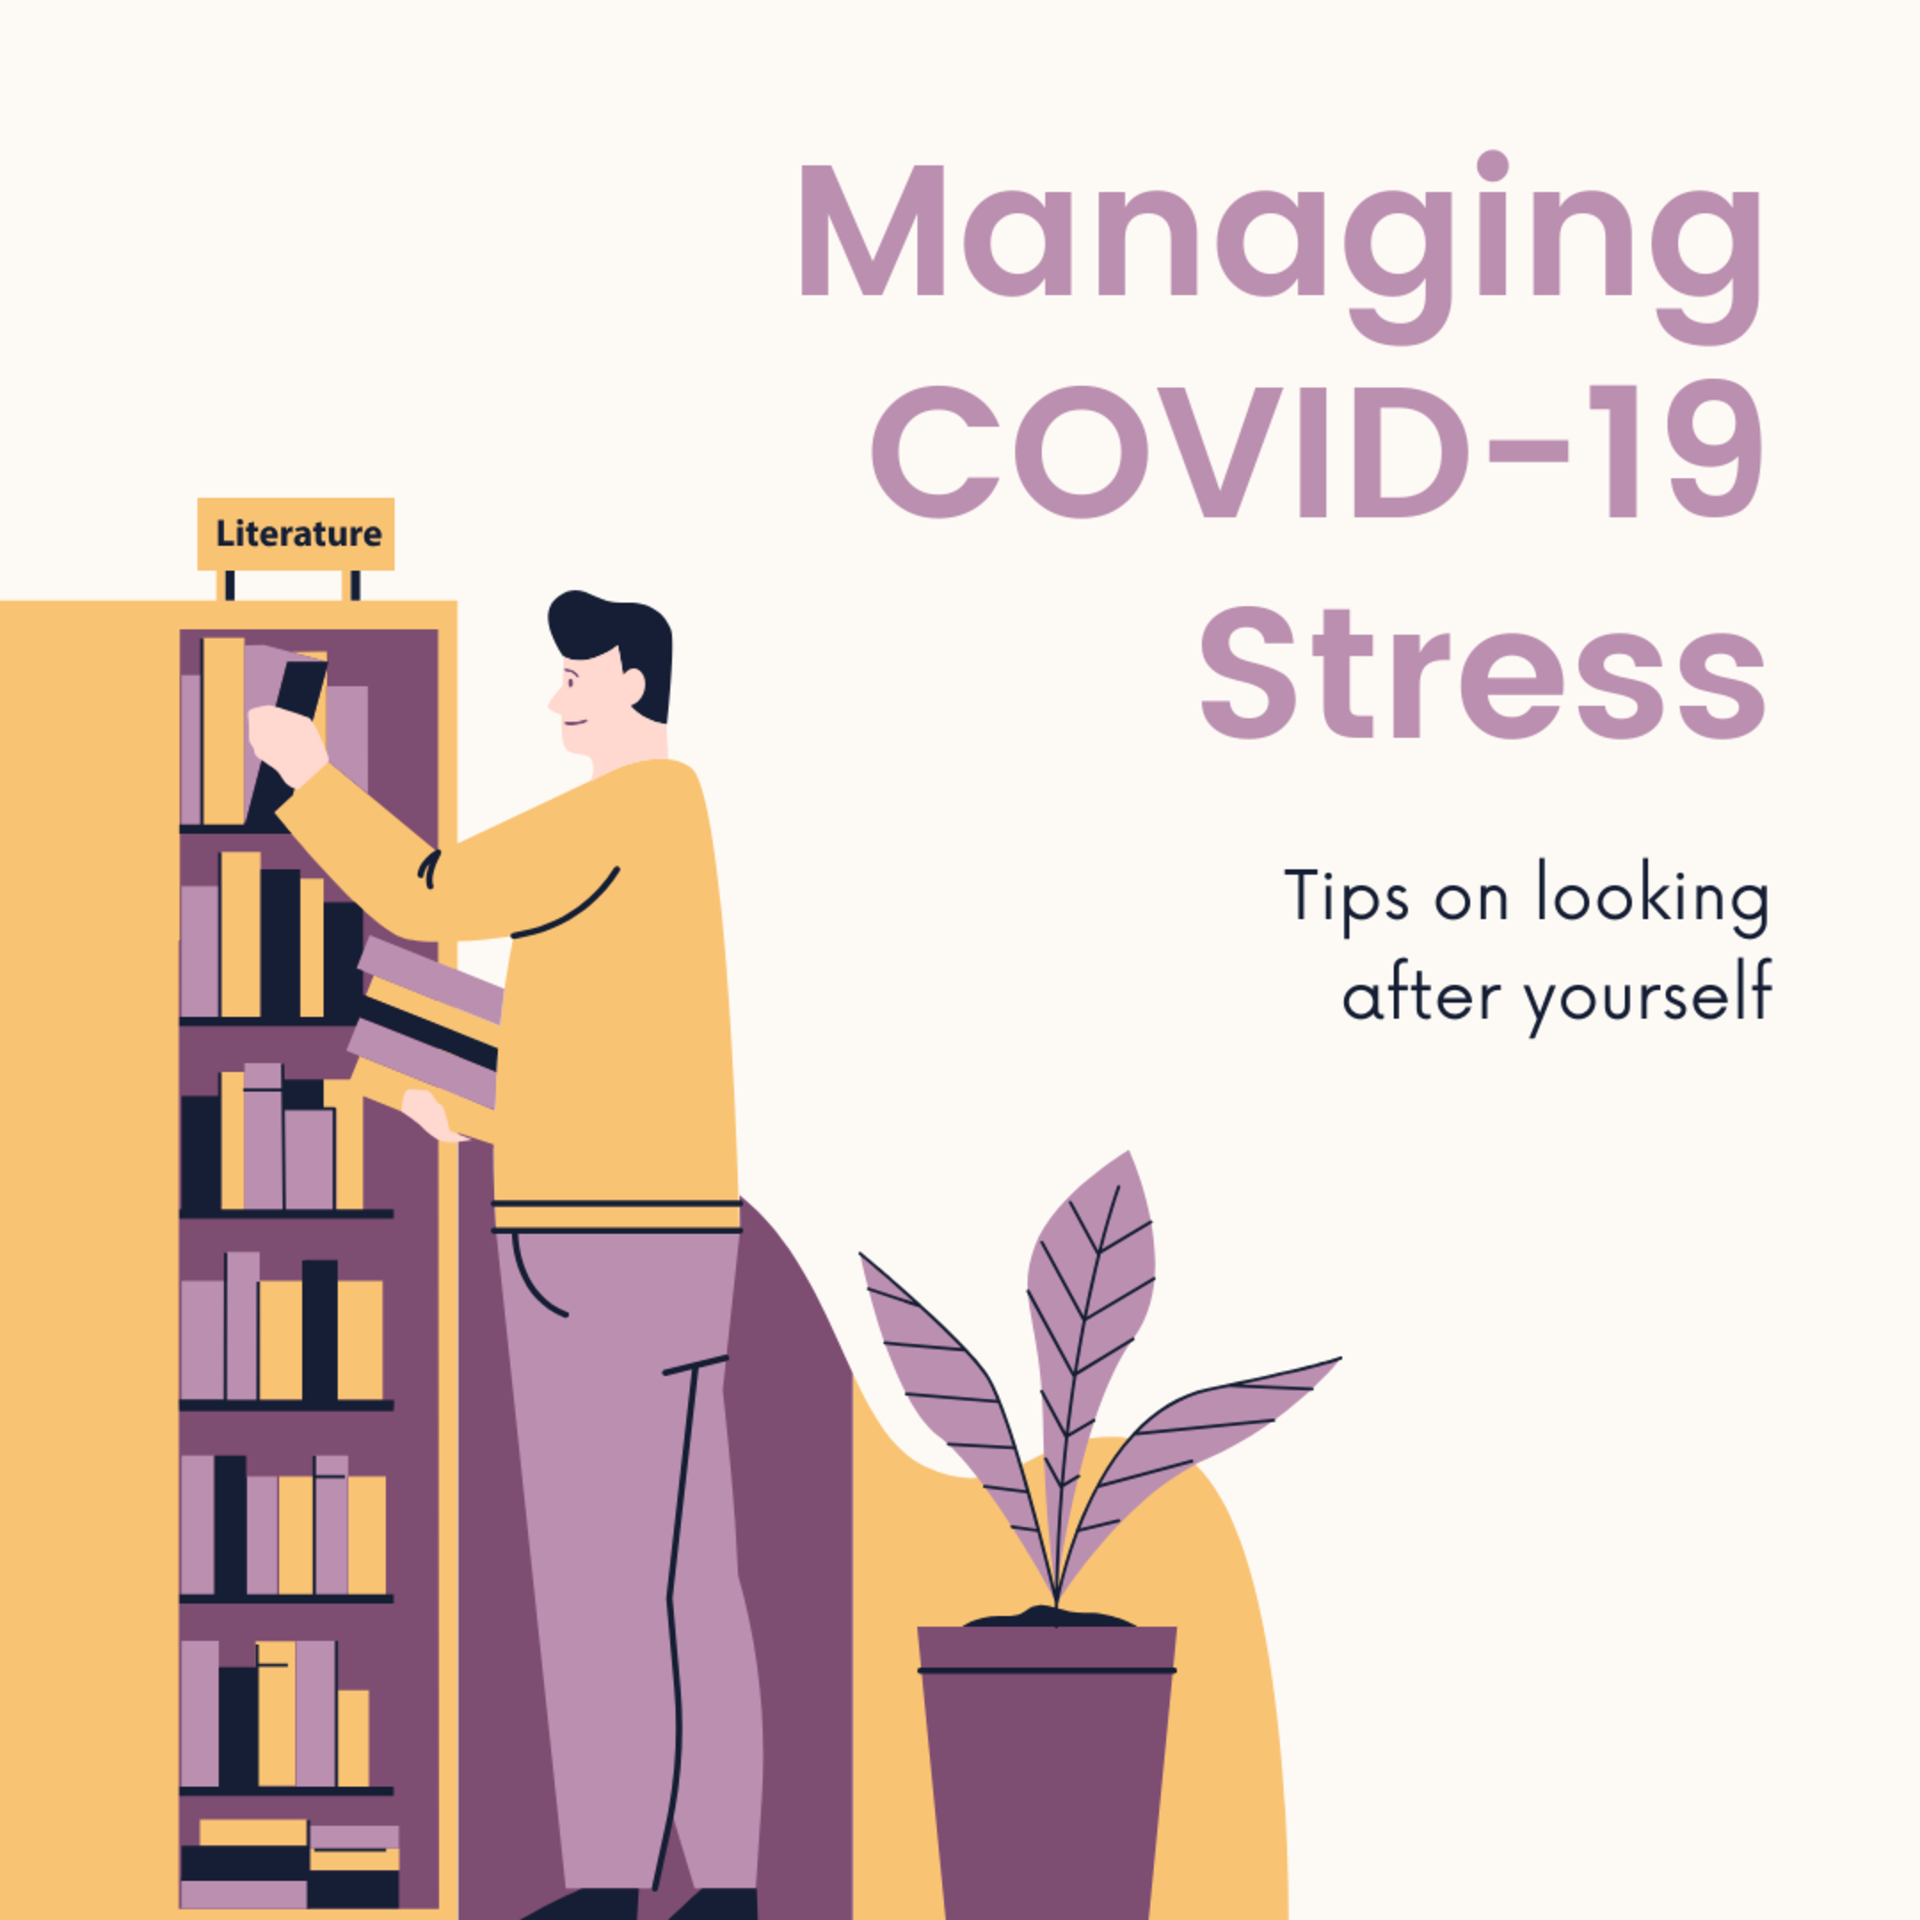 How to manage COVID-19 stress